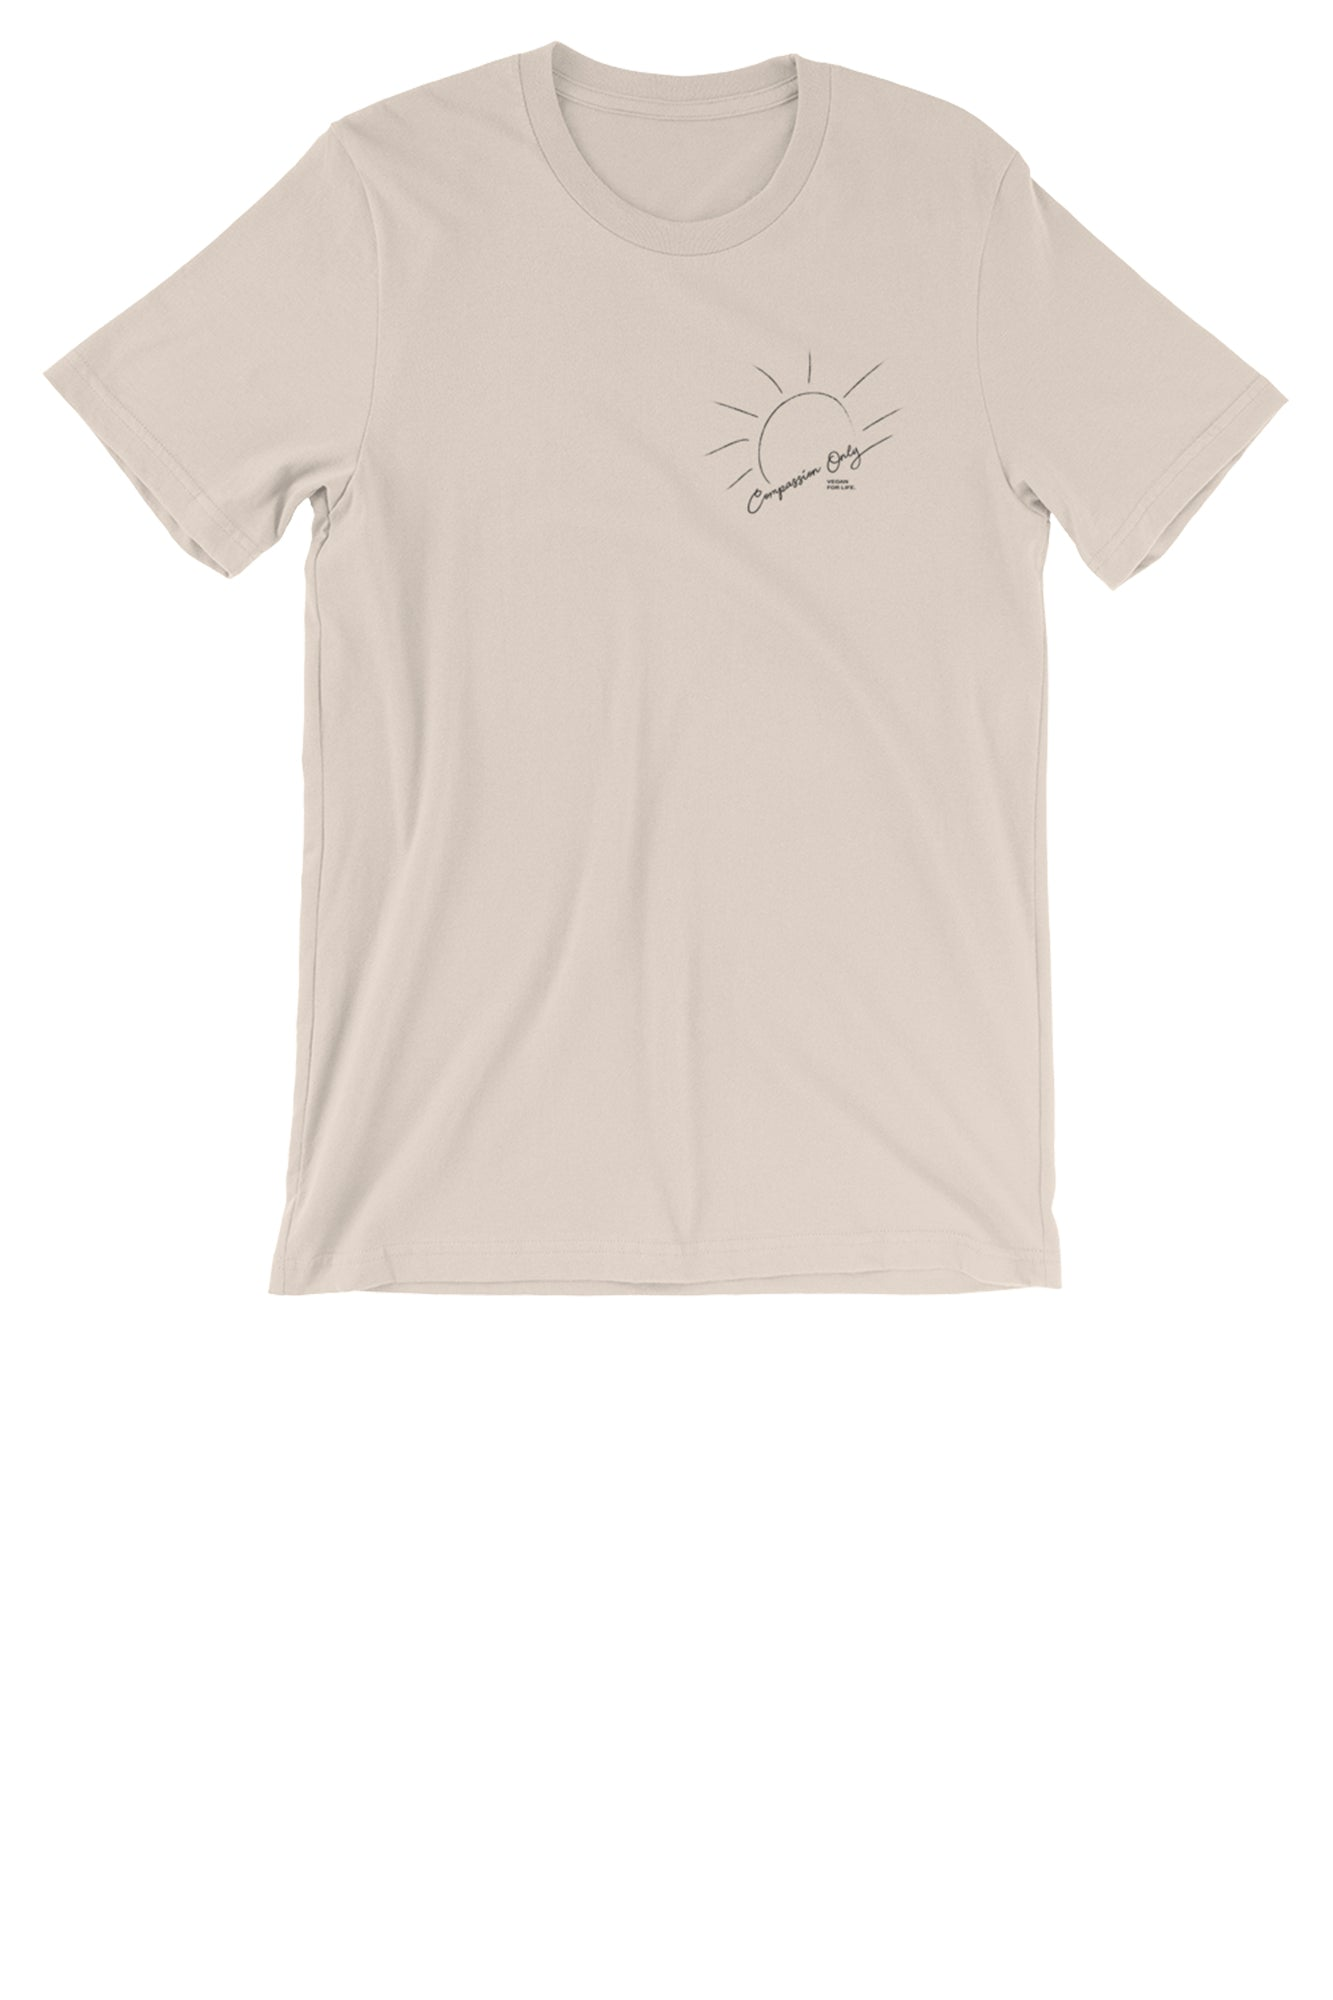 Compassion Only Basic Tee